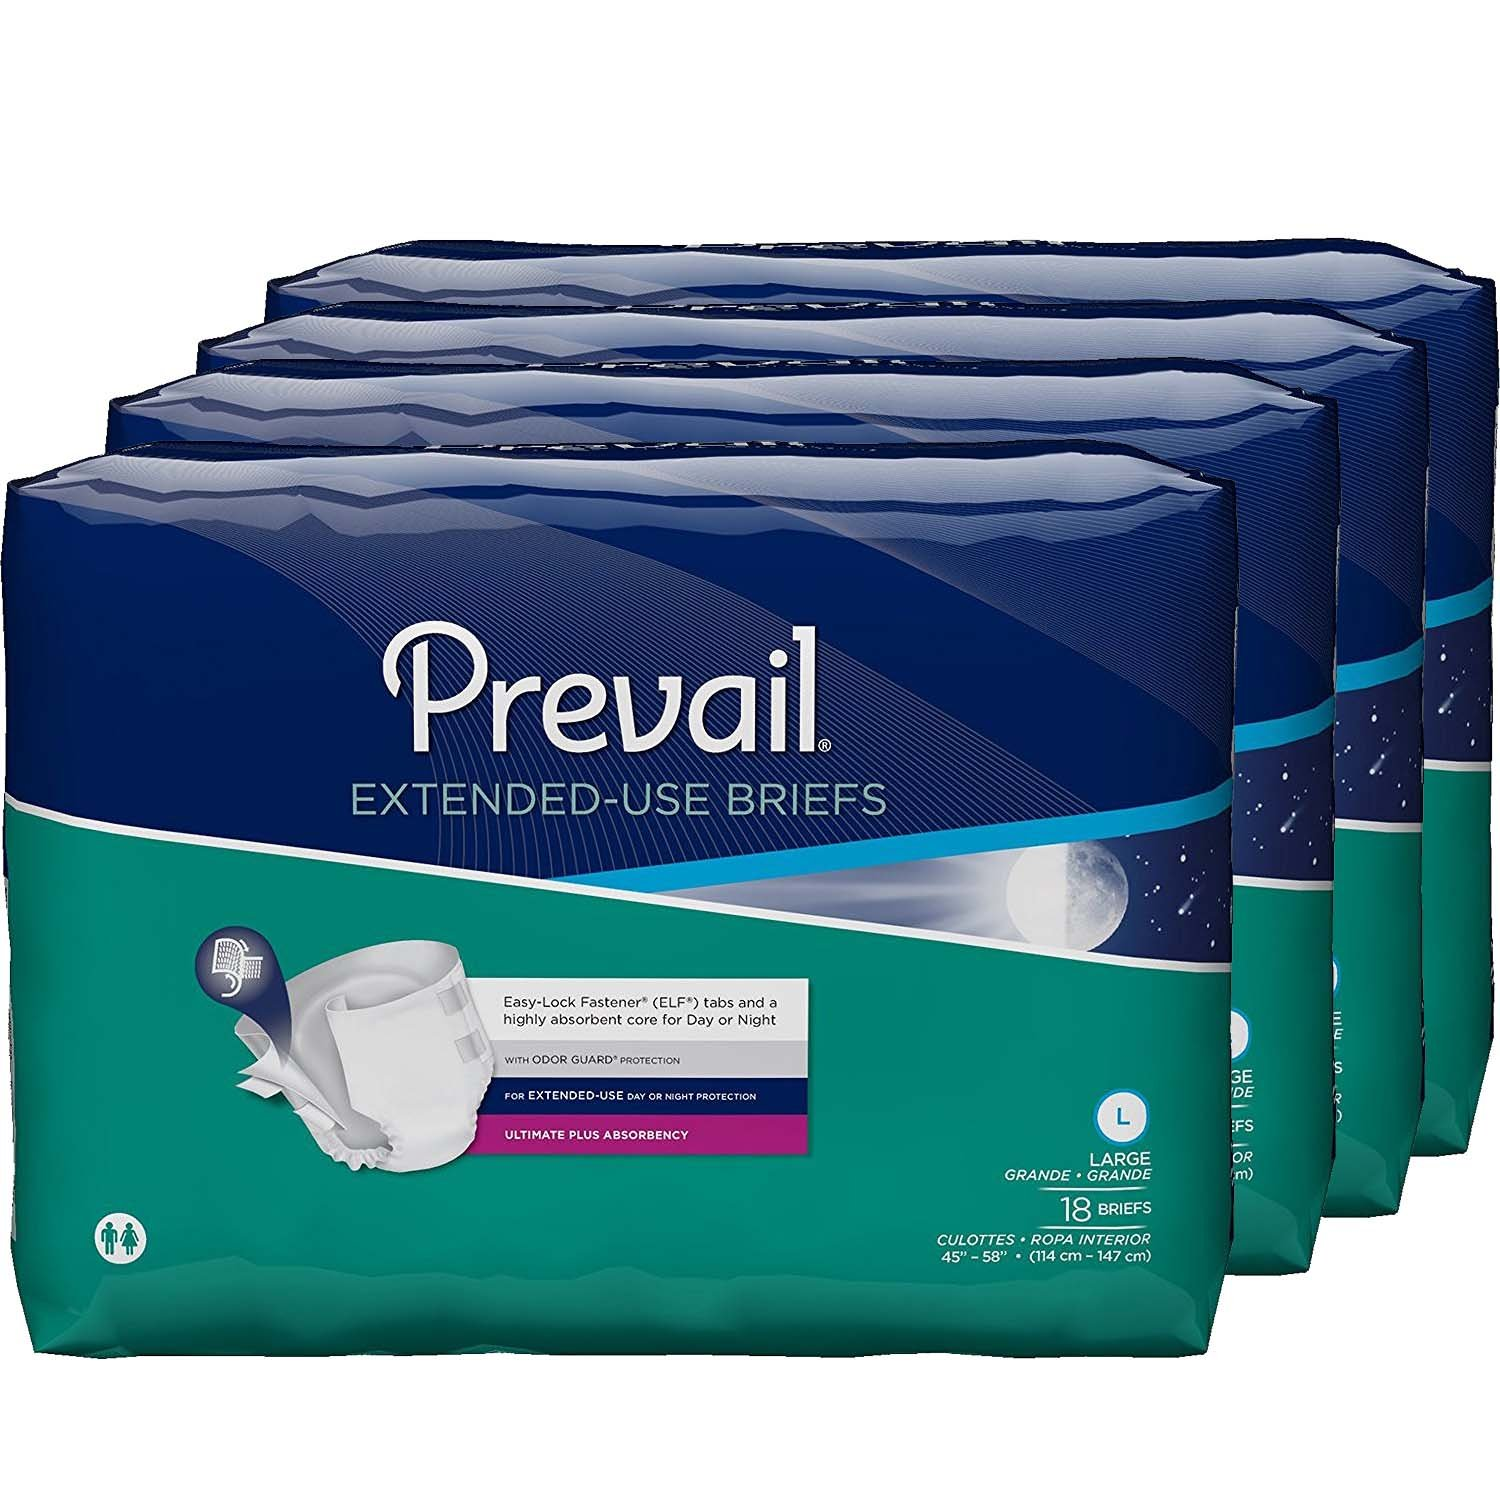 Amazon.com: Prevail Extended Use Incontinence Briefs, Large, 18-Count (Pack of 4): Health & Personal Care